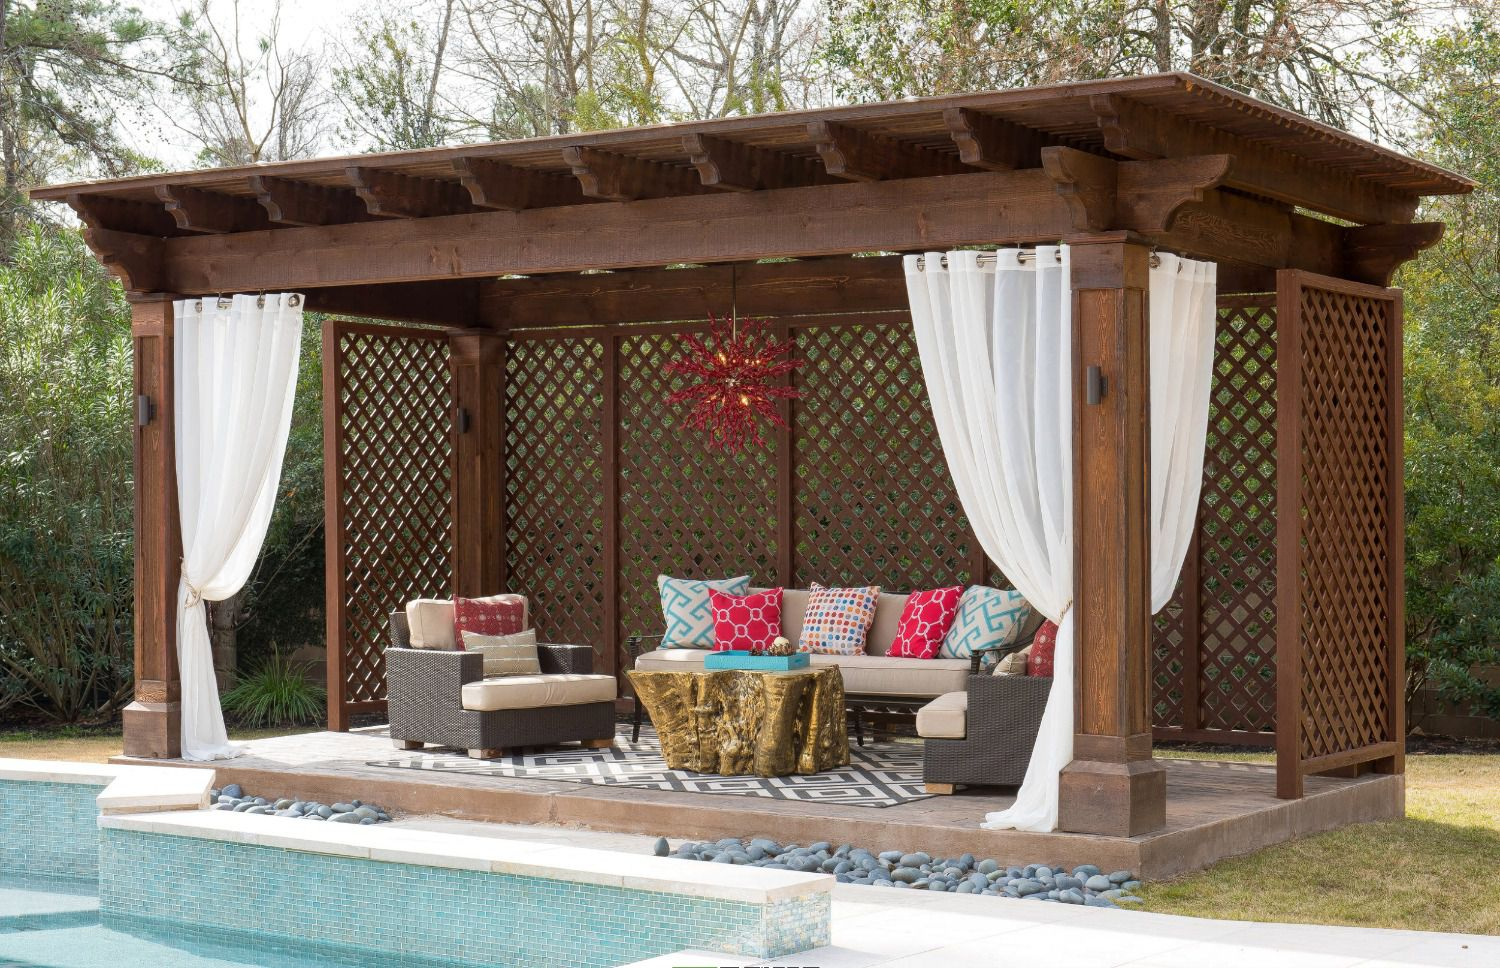 27 Gorgeous Gazebo Design Ideas for 13 Awesome Concepts of How to Build Gazebo Ideas For Backyard